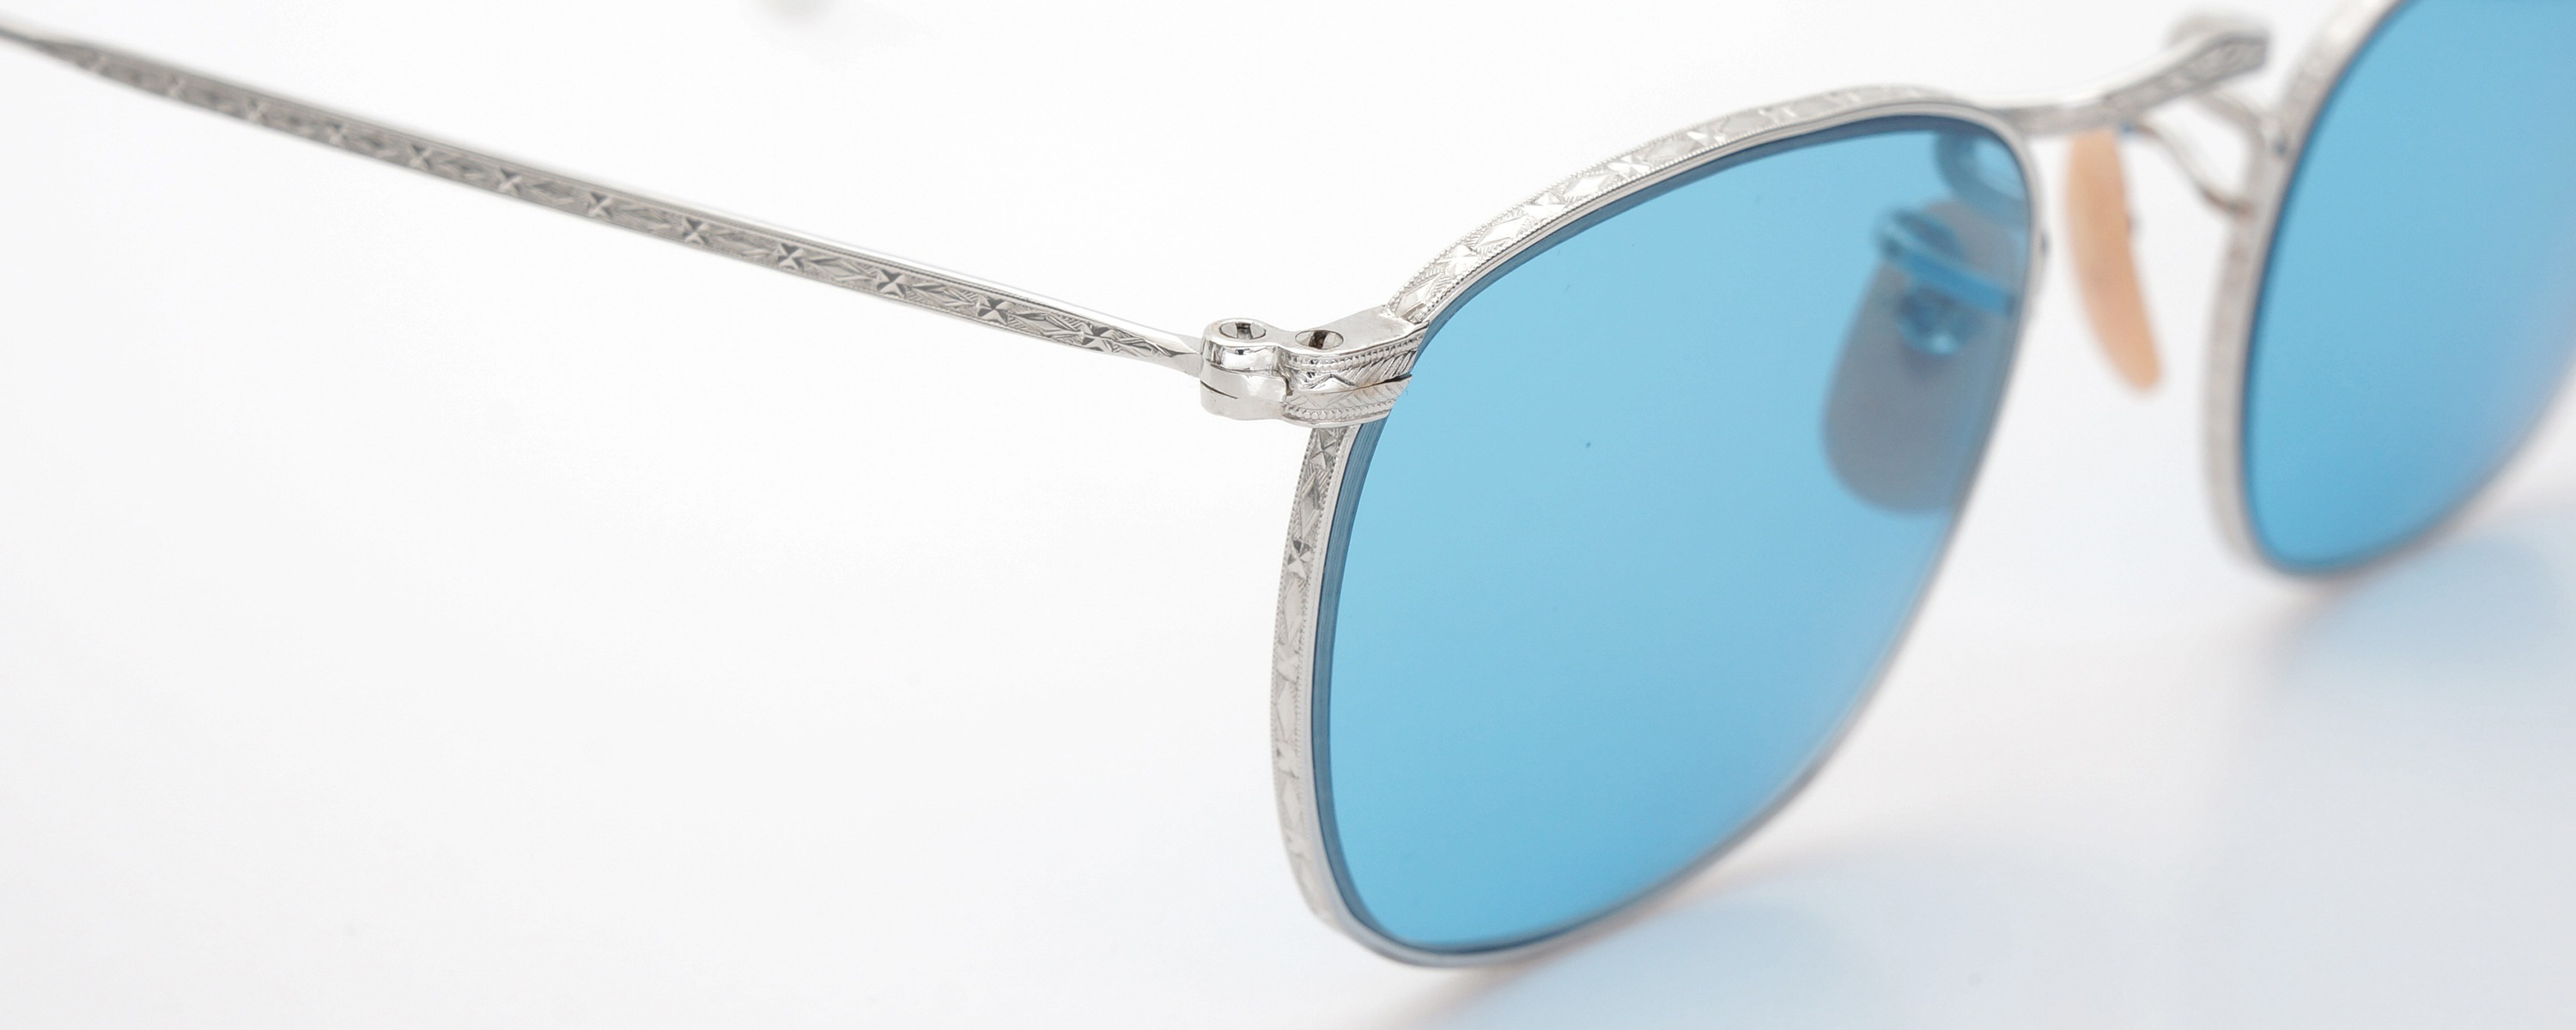 The Spectacle メガネ 1930s-40s Bausch&Lomb Full-Frame Ful-Vue Whitaker WG 45-21 Light-Blue-Lense イメージ6